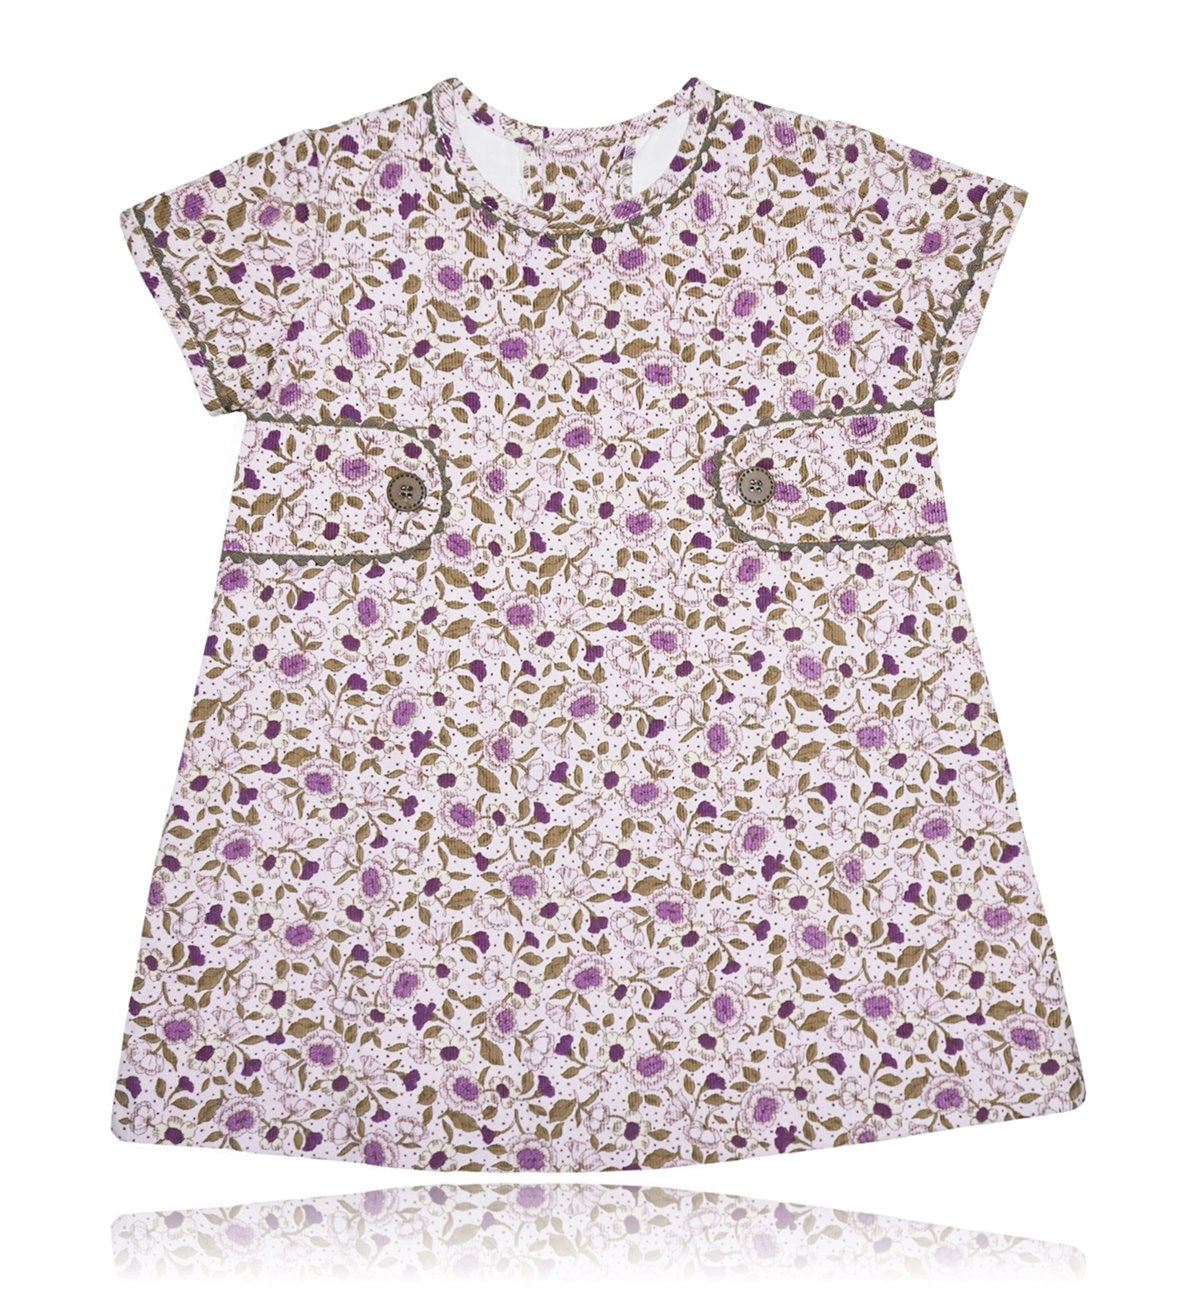 Spanish baby clothes | baby Dress | Floral print corduroy dress |babymaC  - 1